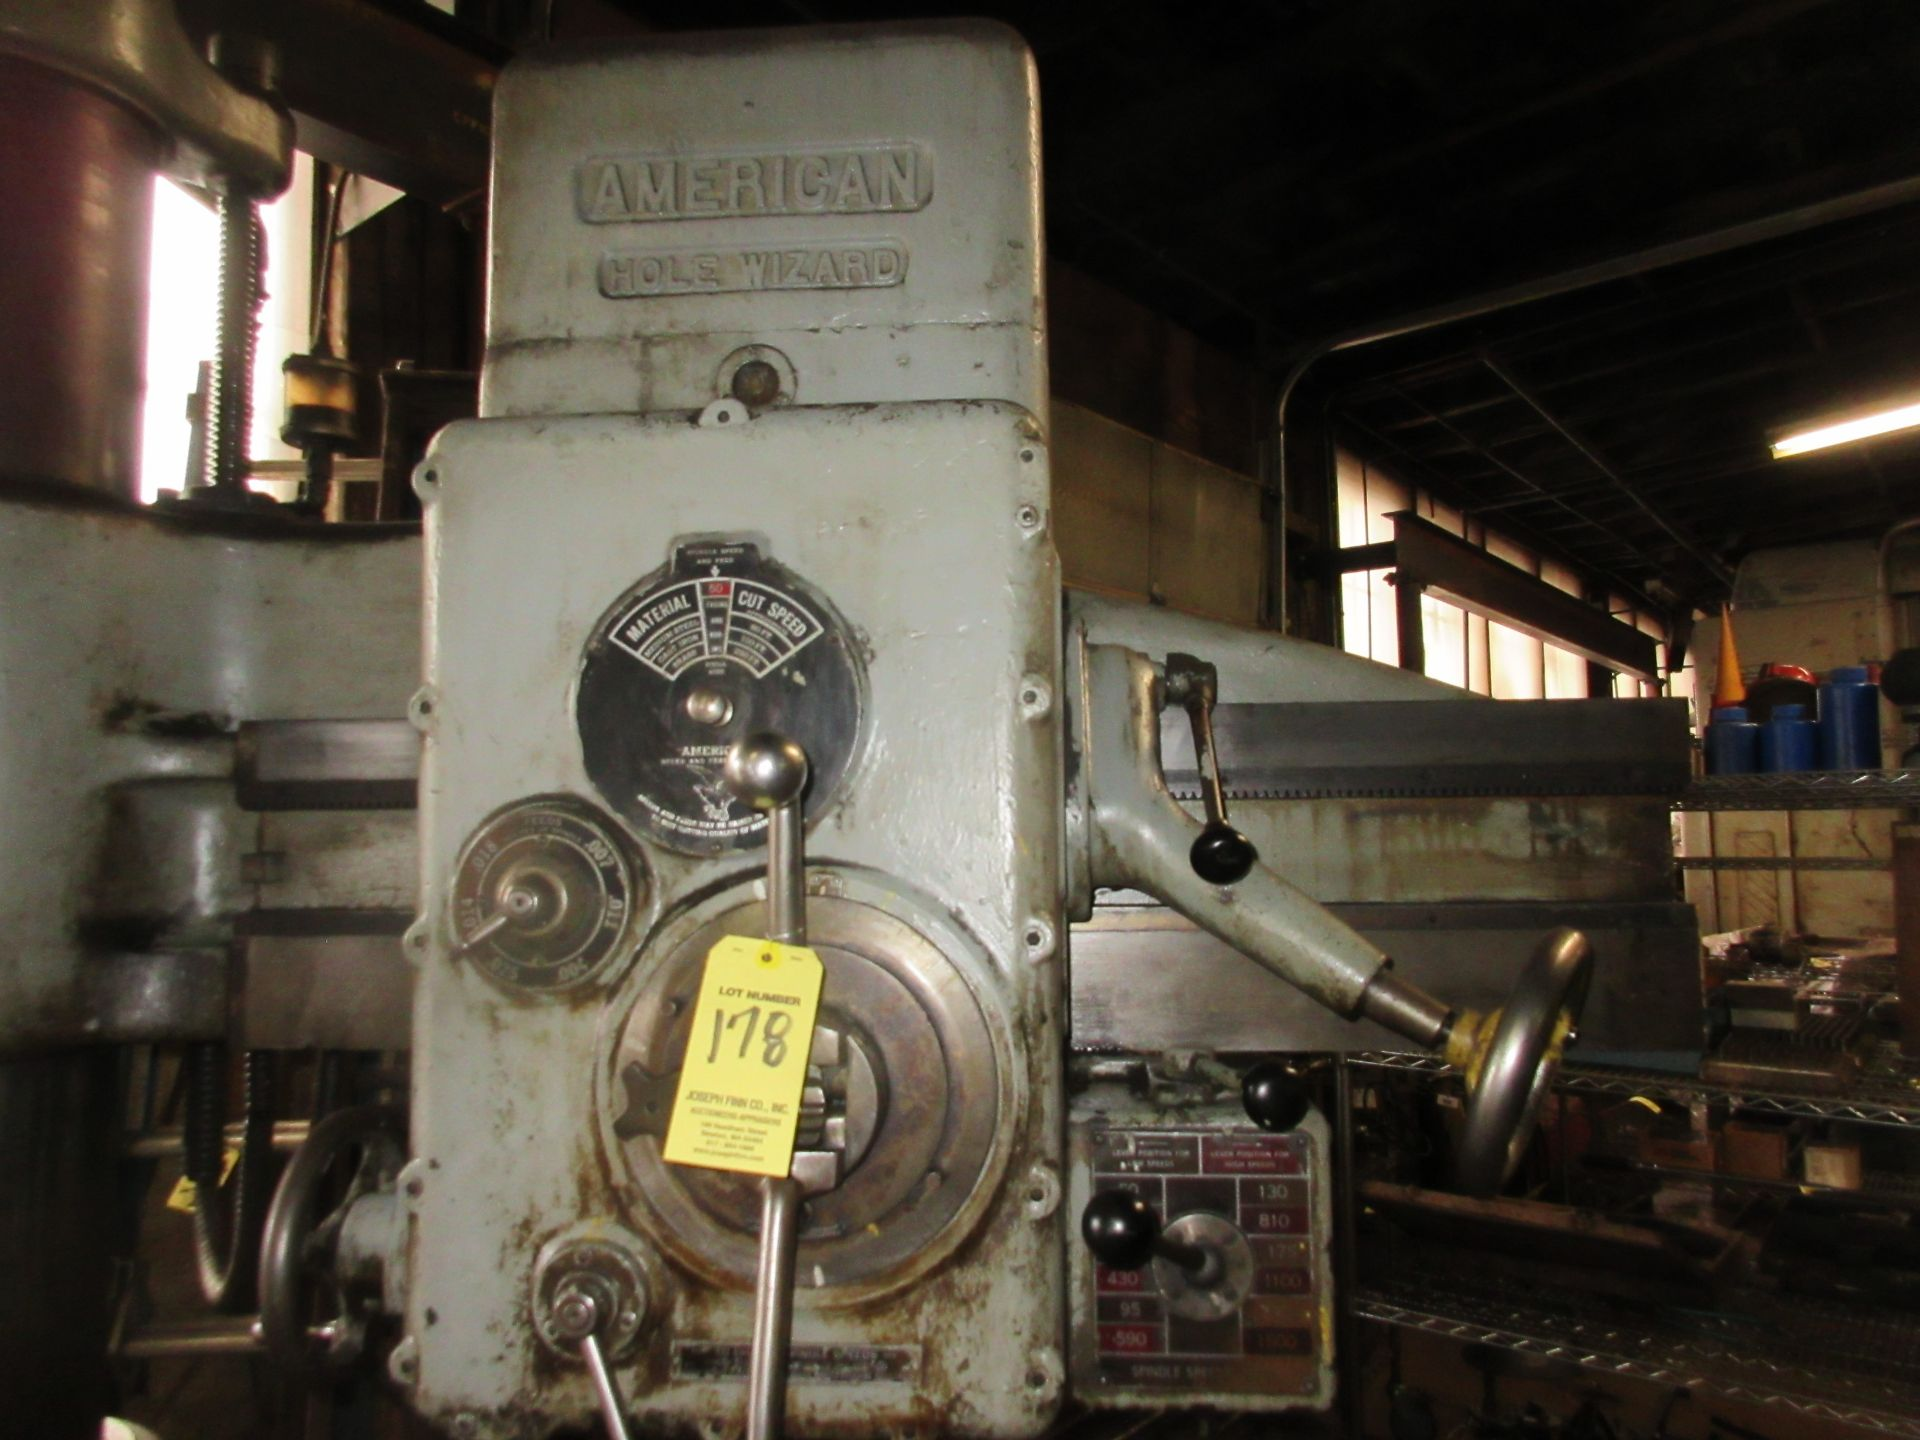 (1) American Hole Wizard Radial Arm Drill, Includes (2) Transformers - Image 2 of 6